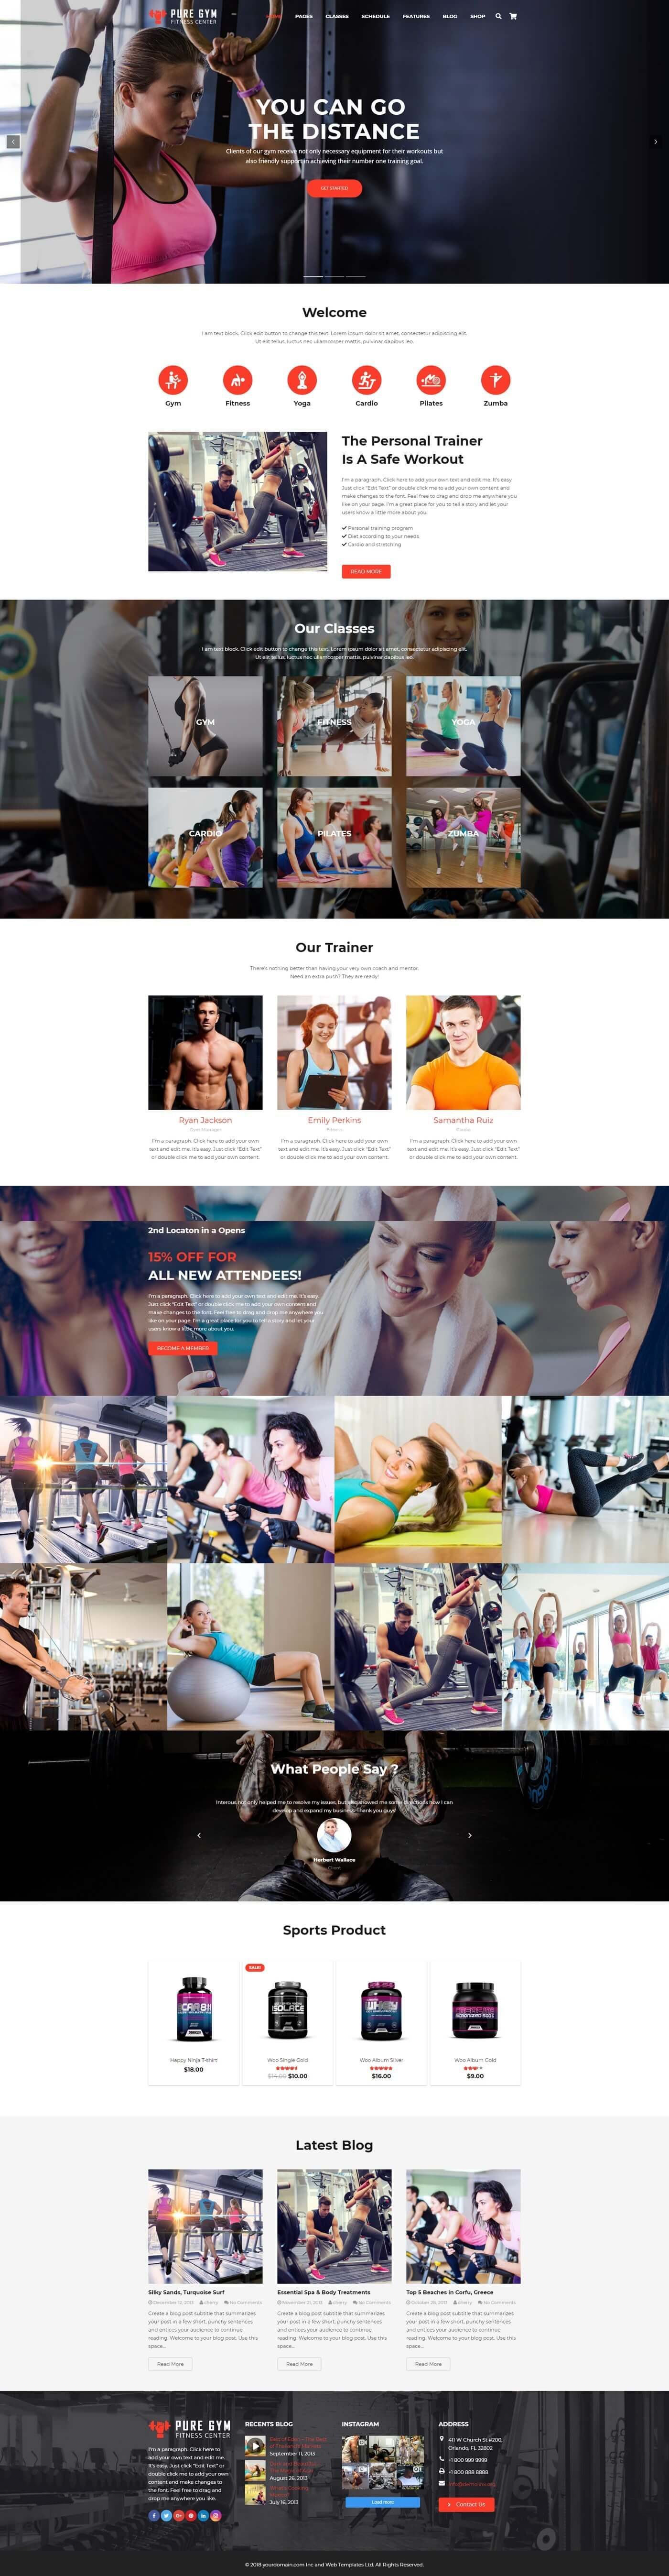 PureGym - Gym Fitness WordPress Theme Screenshot 1